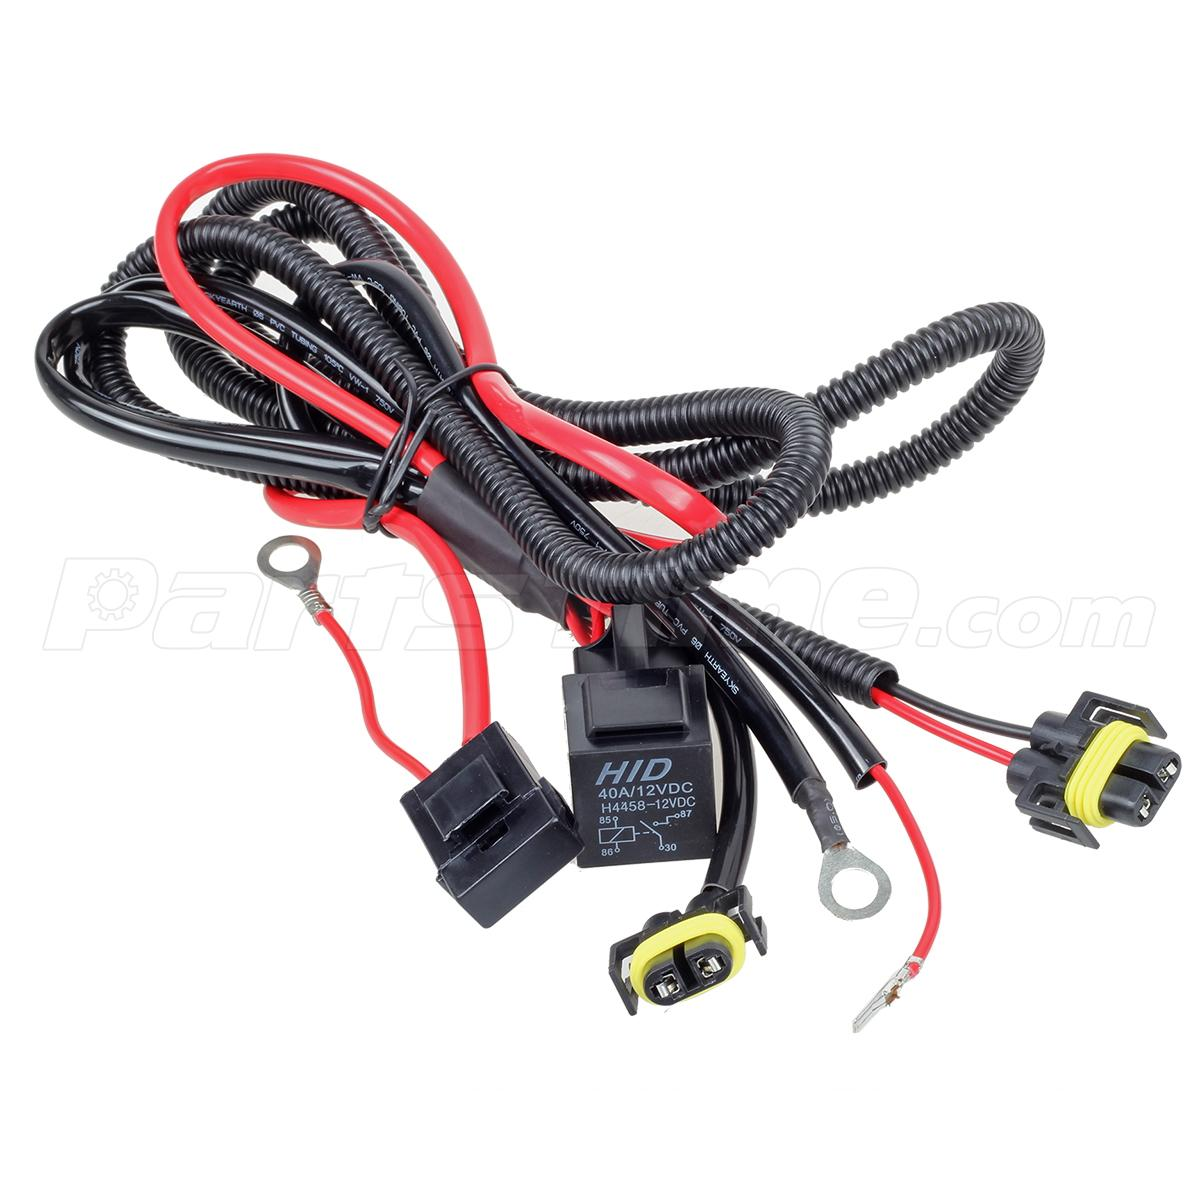 H hid xenon conversion kit relay wire harness for